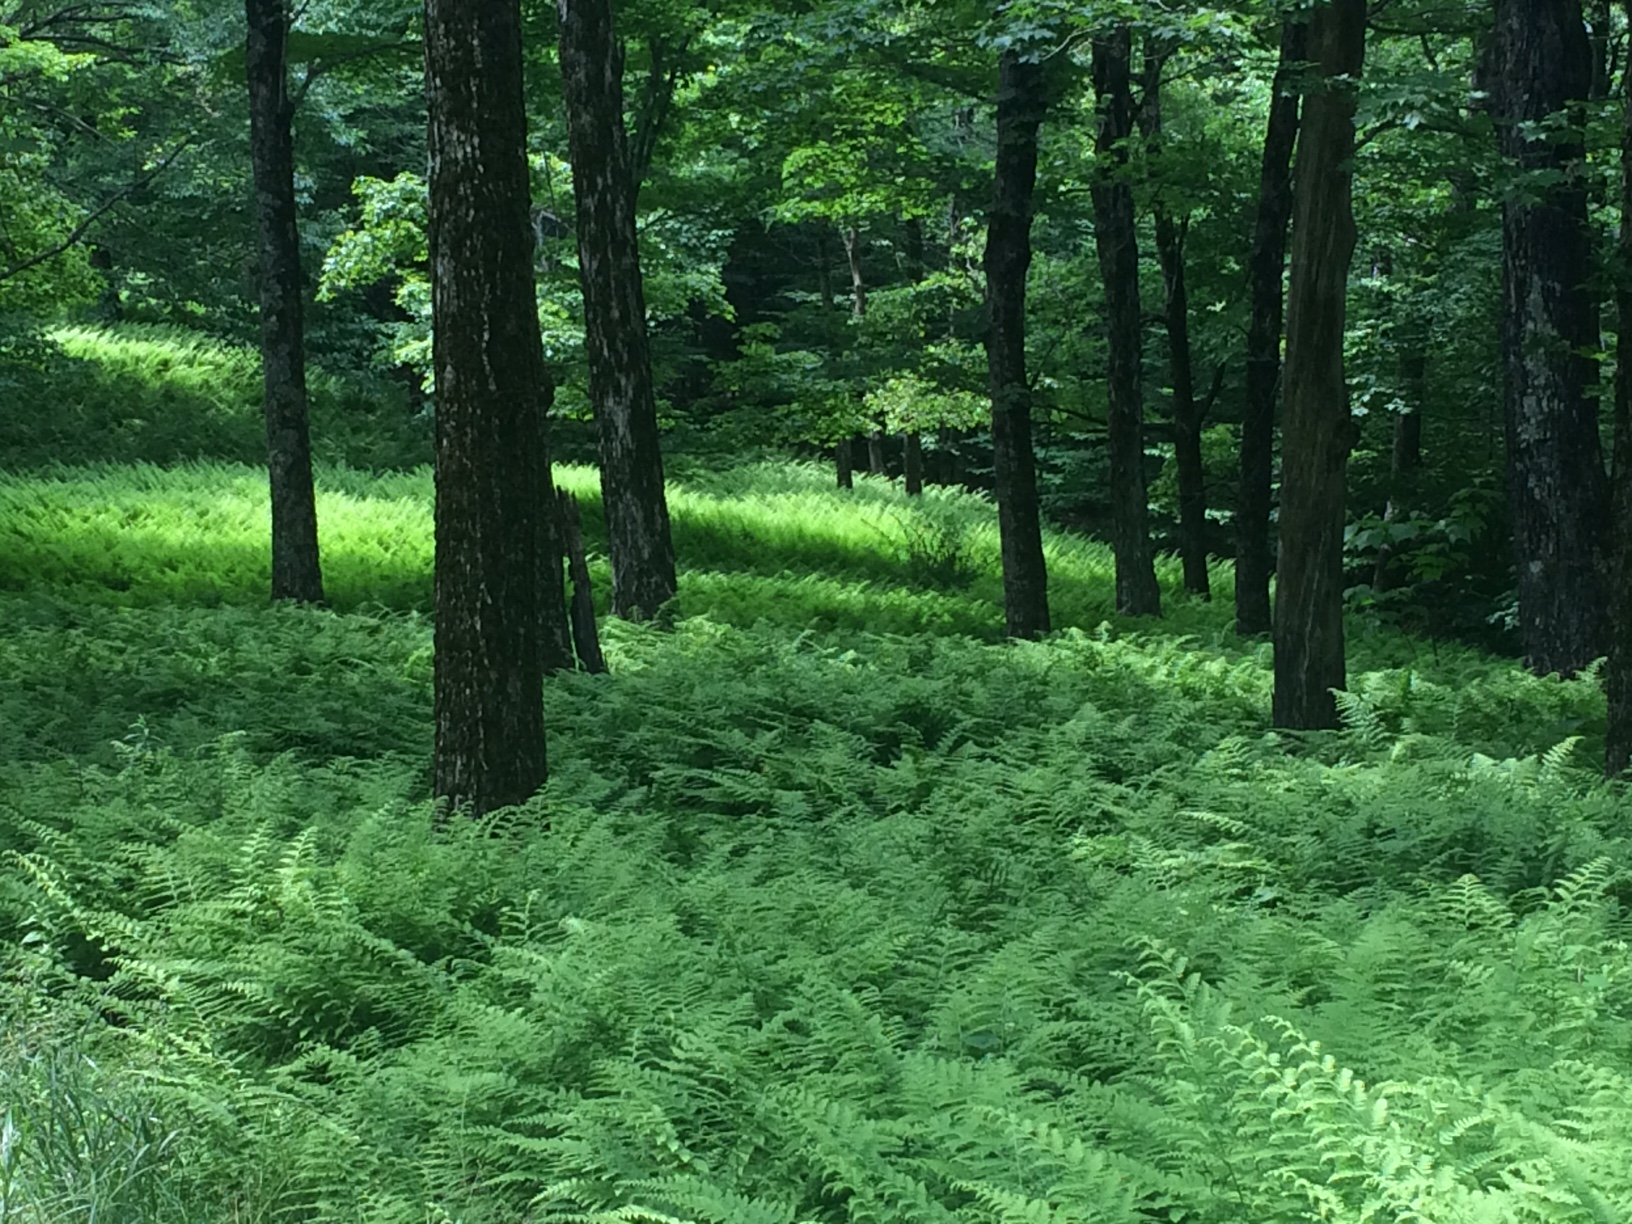 Fern beds galore along the TCT.